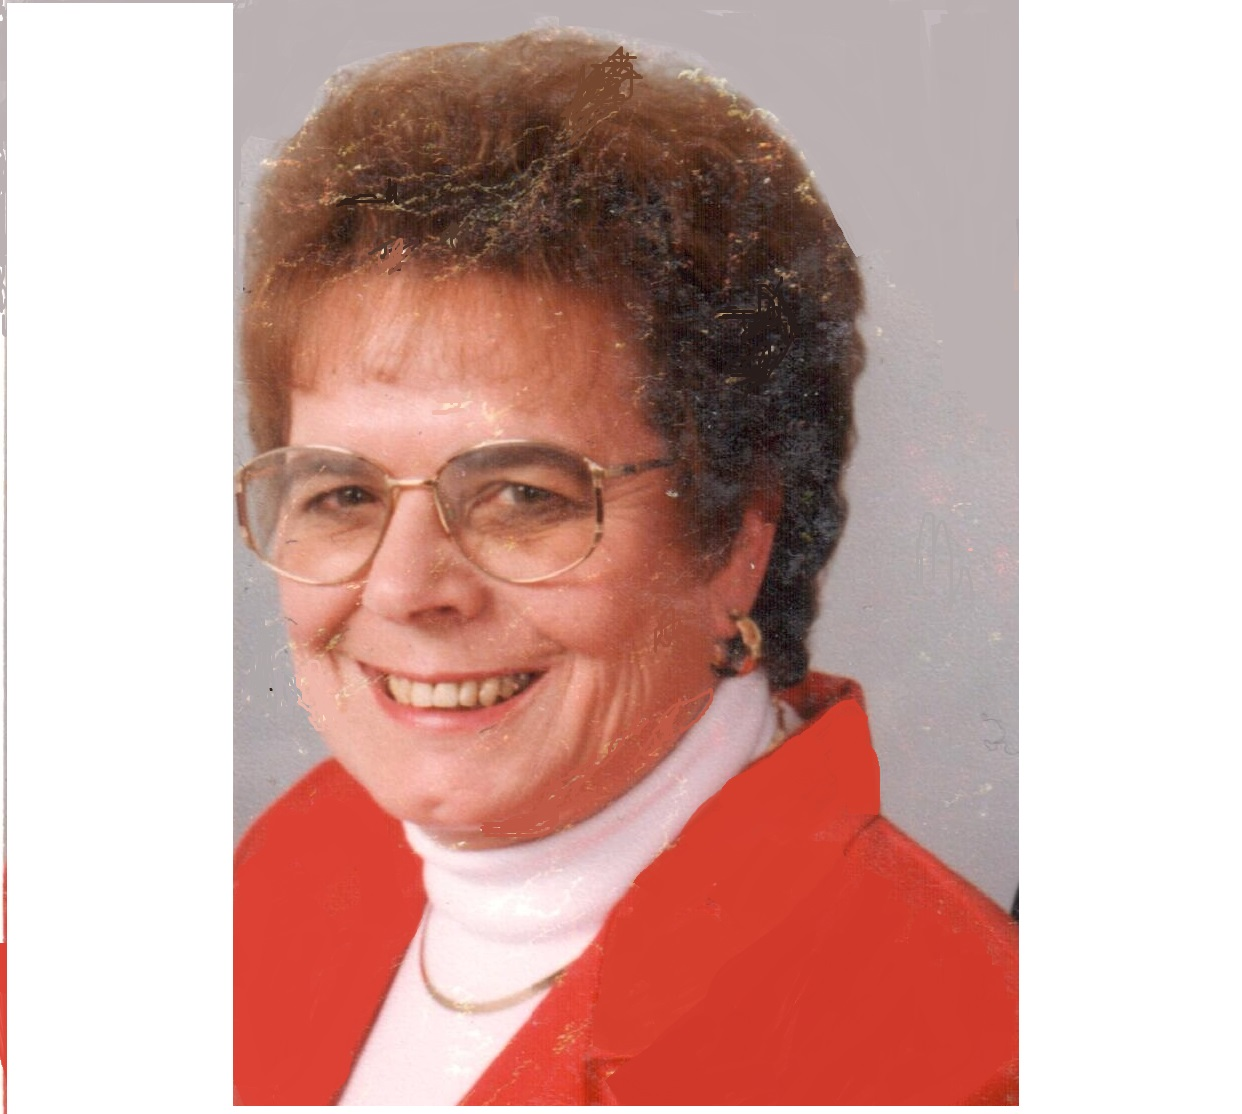 Evelyn L. Fischer, age 79 of Jasper